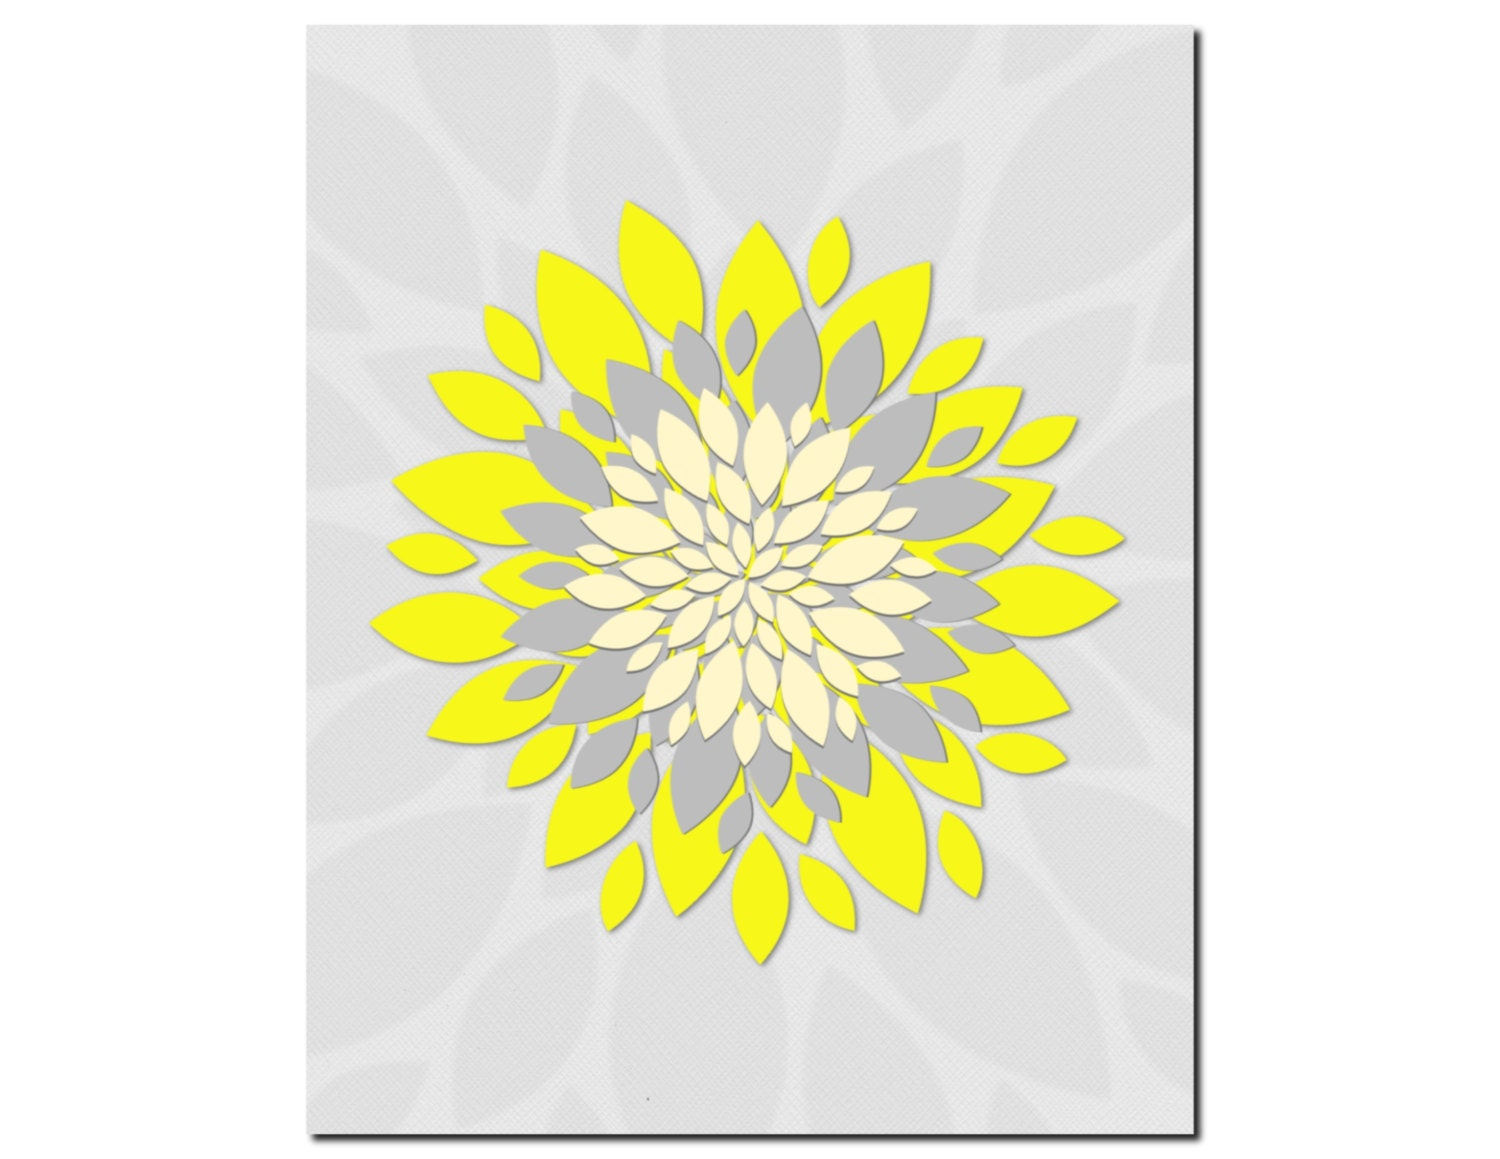 yellow gray wall art home decor flower burst floral by vtdesigns. Black Bedroom Furniture Sets. Home Design Ideas